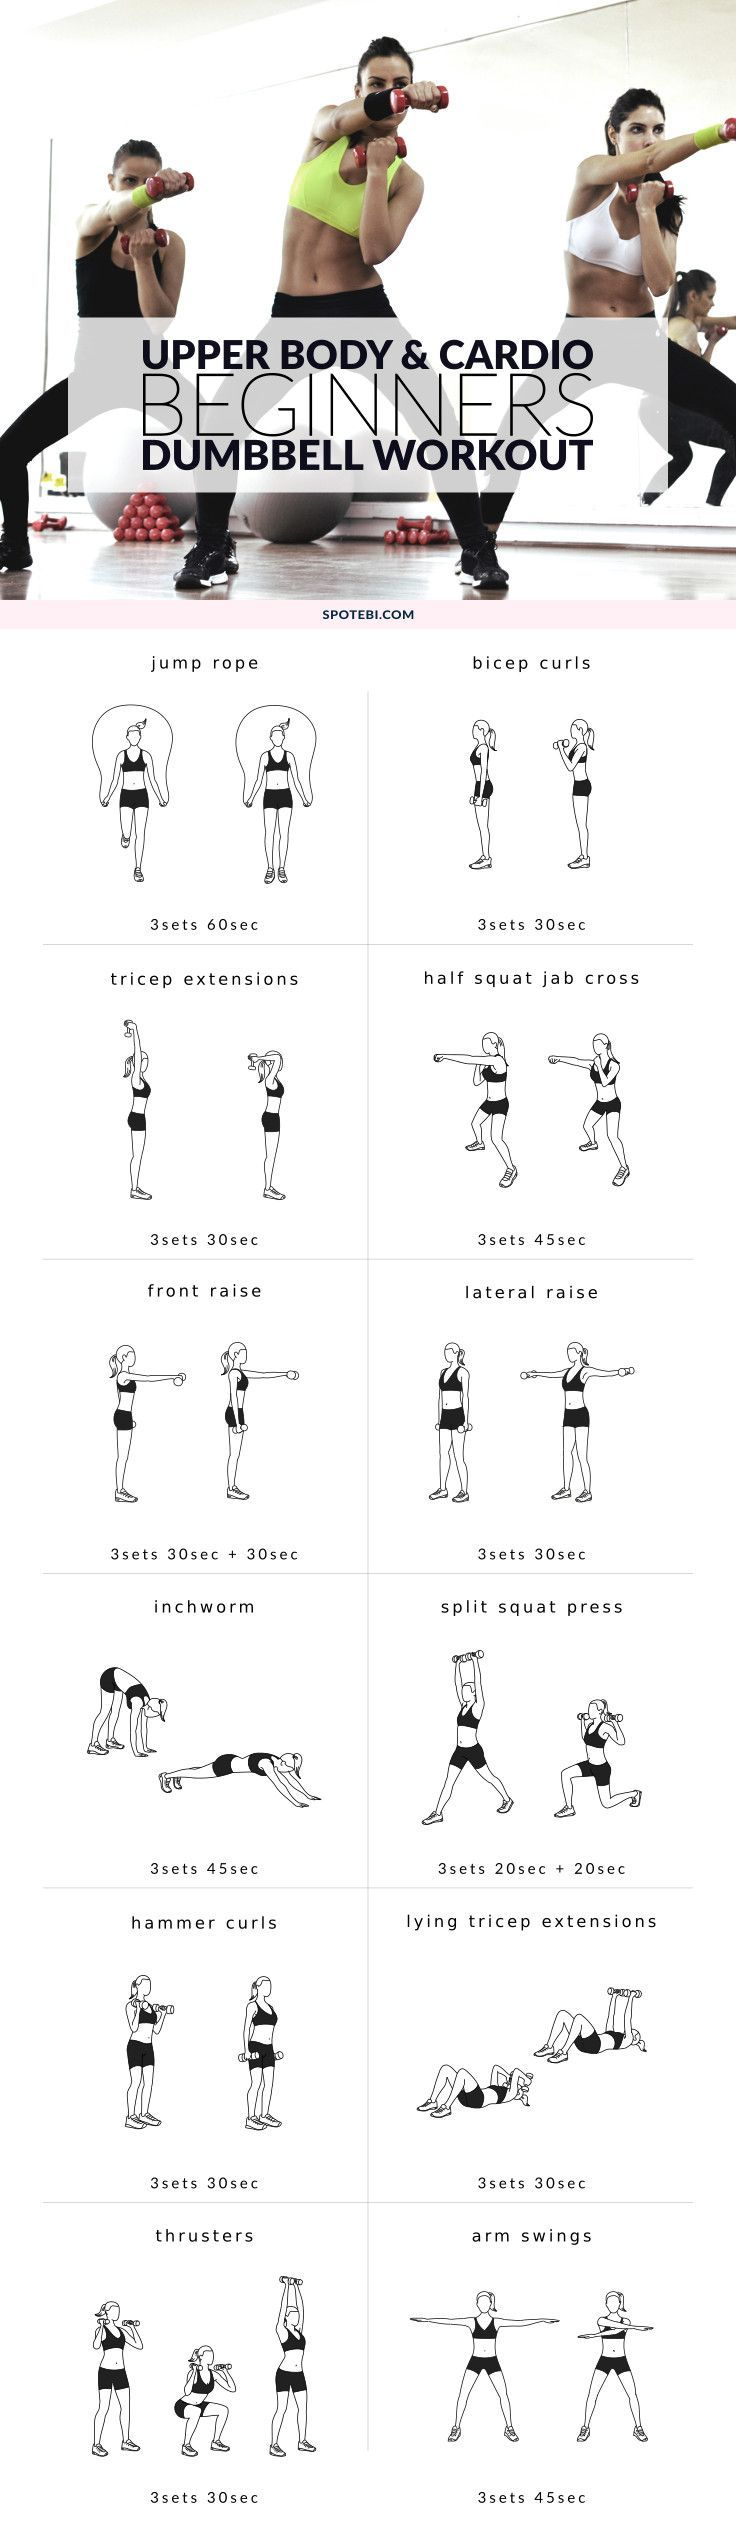 Upper Body Cardio Beginners Workout